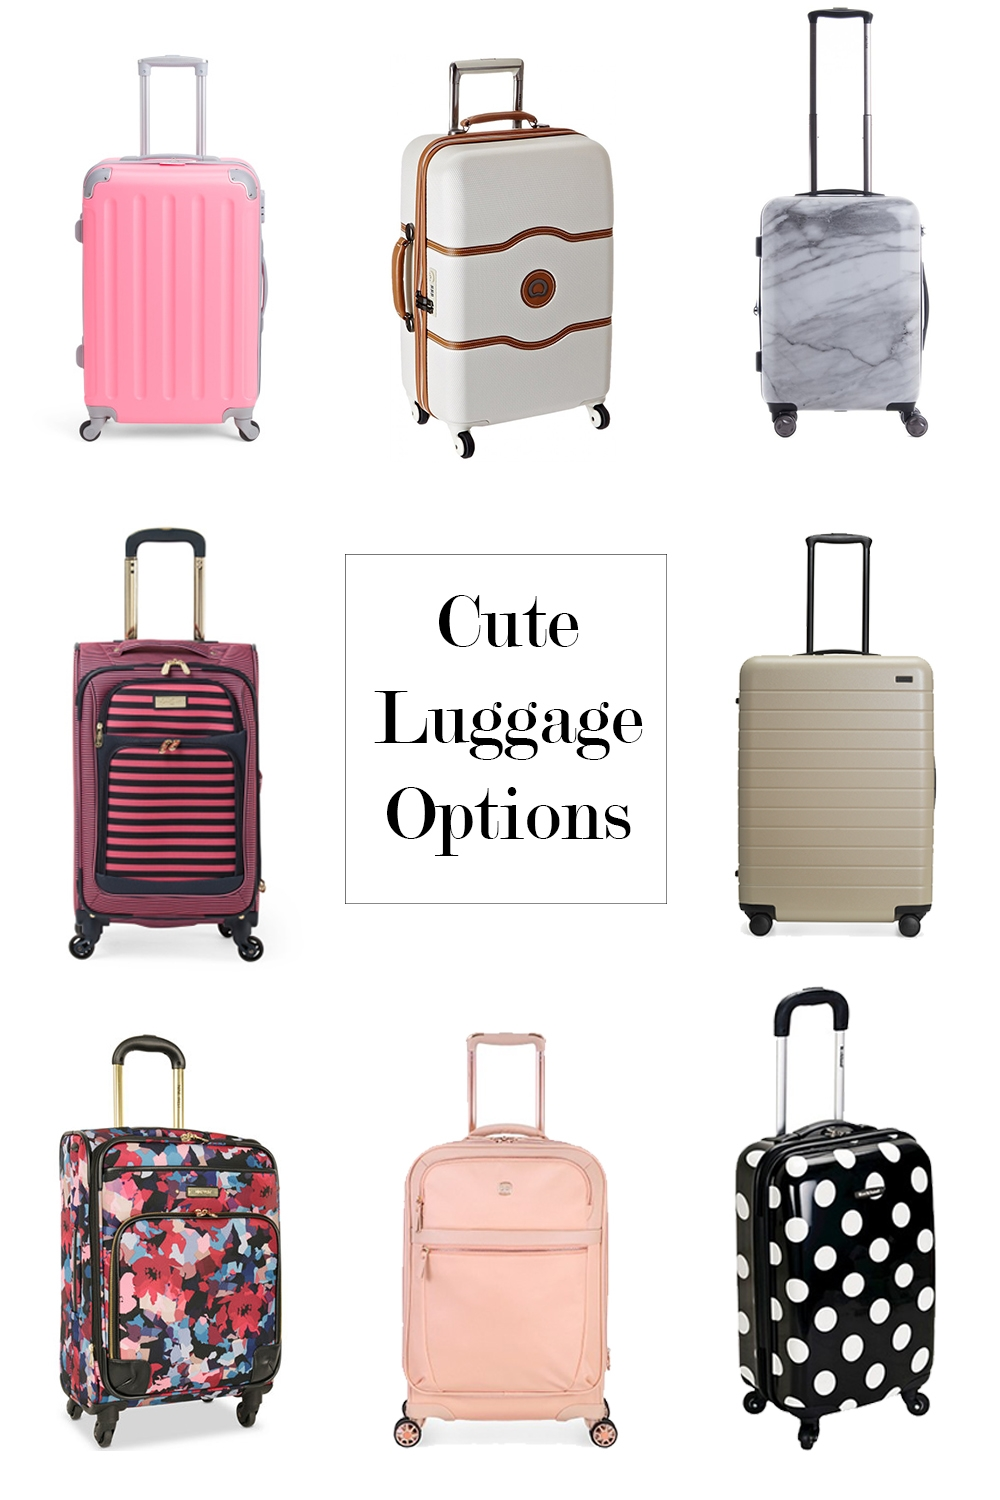 41f590b5f Ever since getting some new luggage for our trip, I've been kind of  obsessed with all the cute luggage options out there. I ended up scoring an  amazing ...